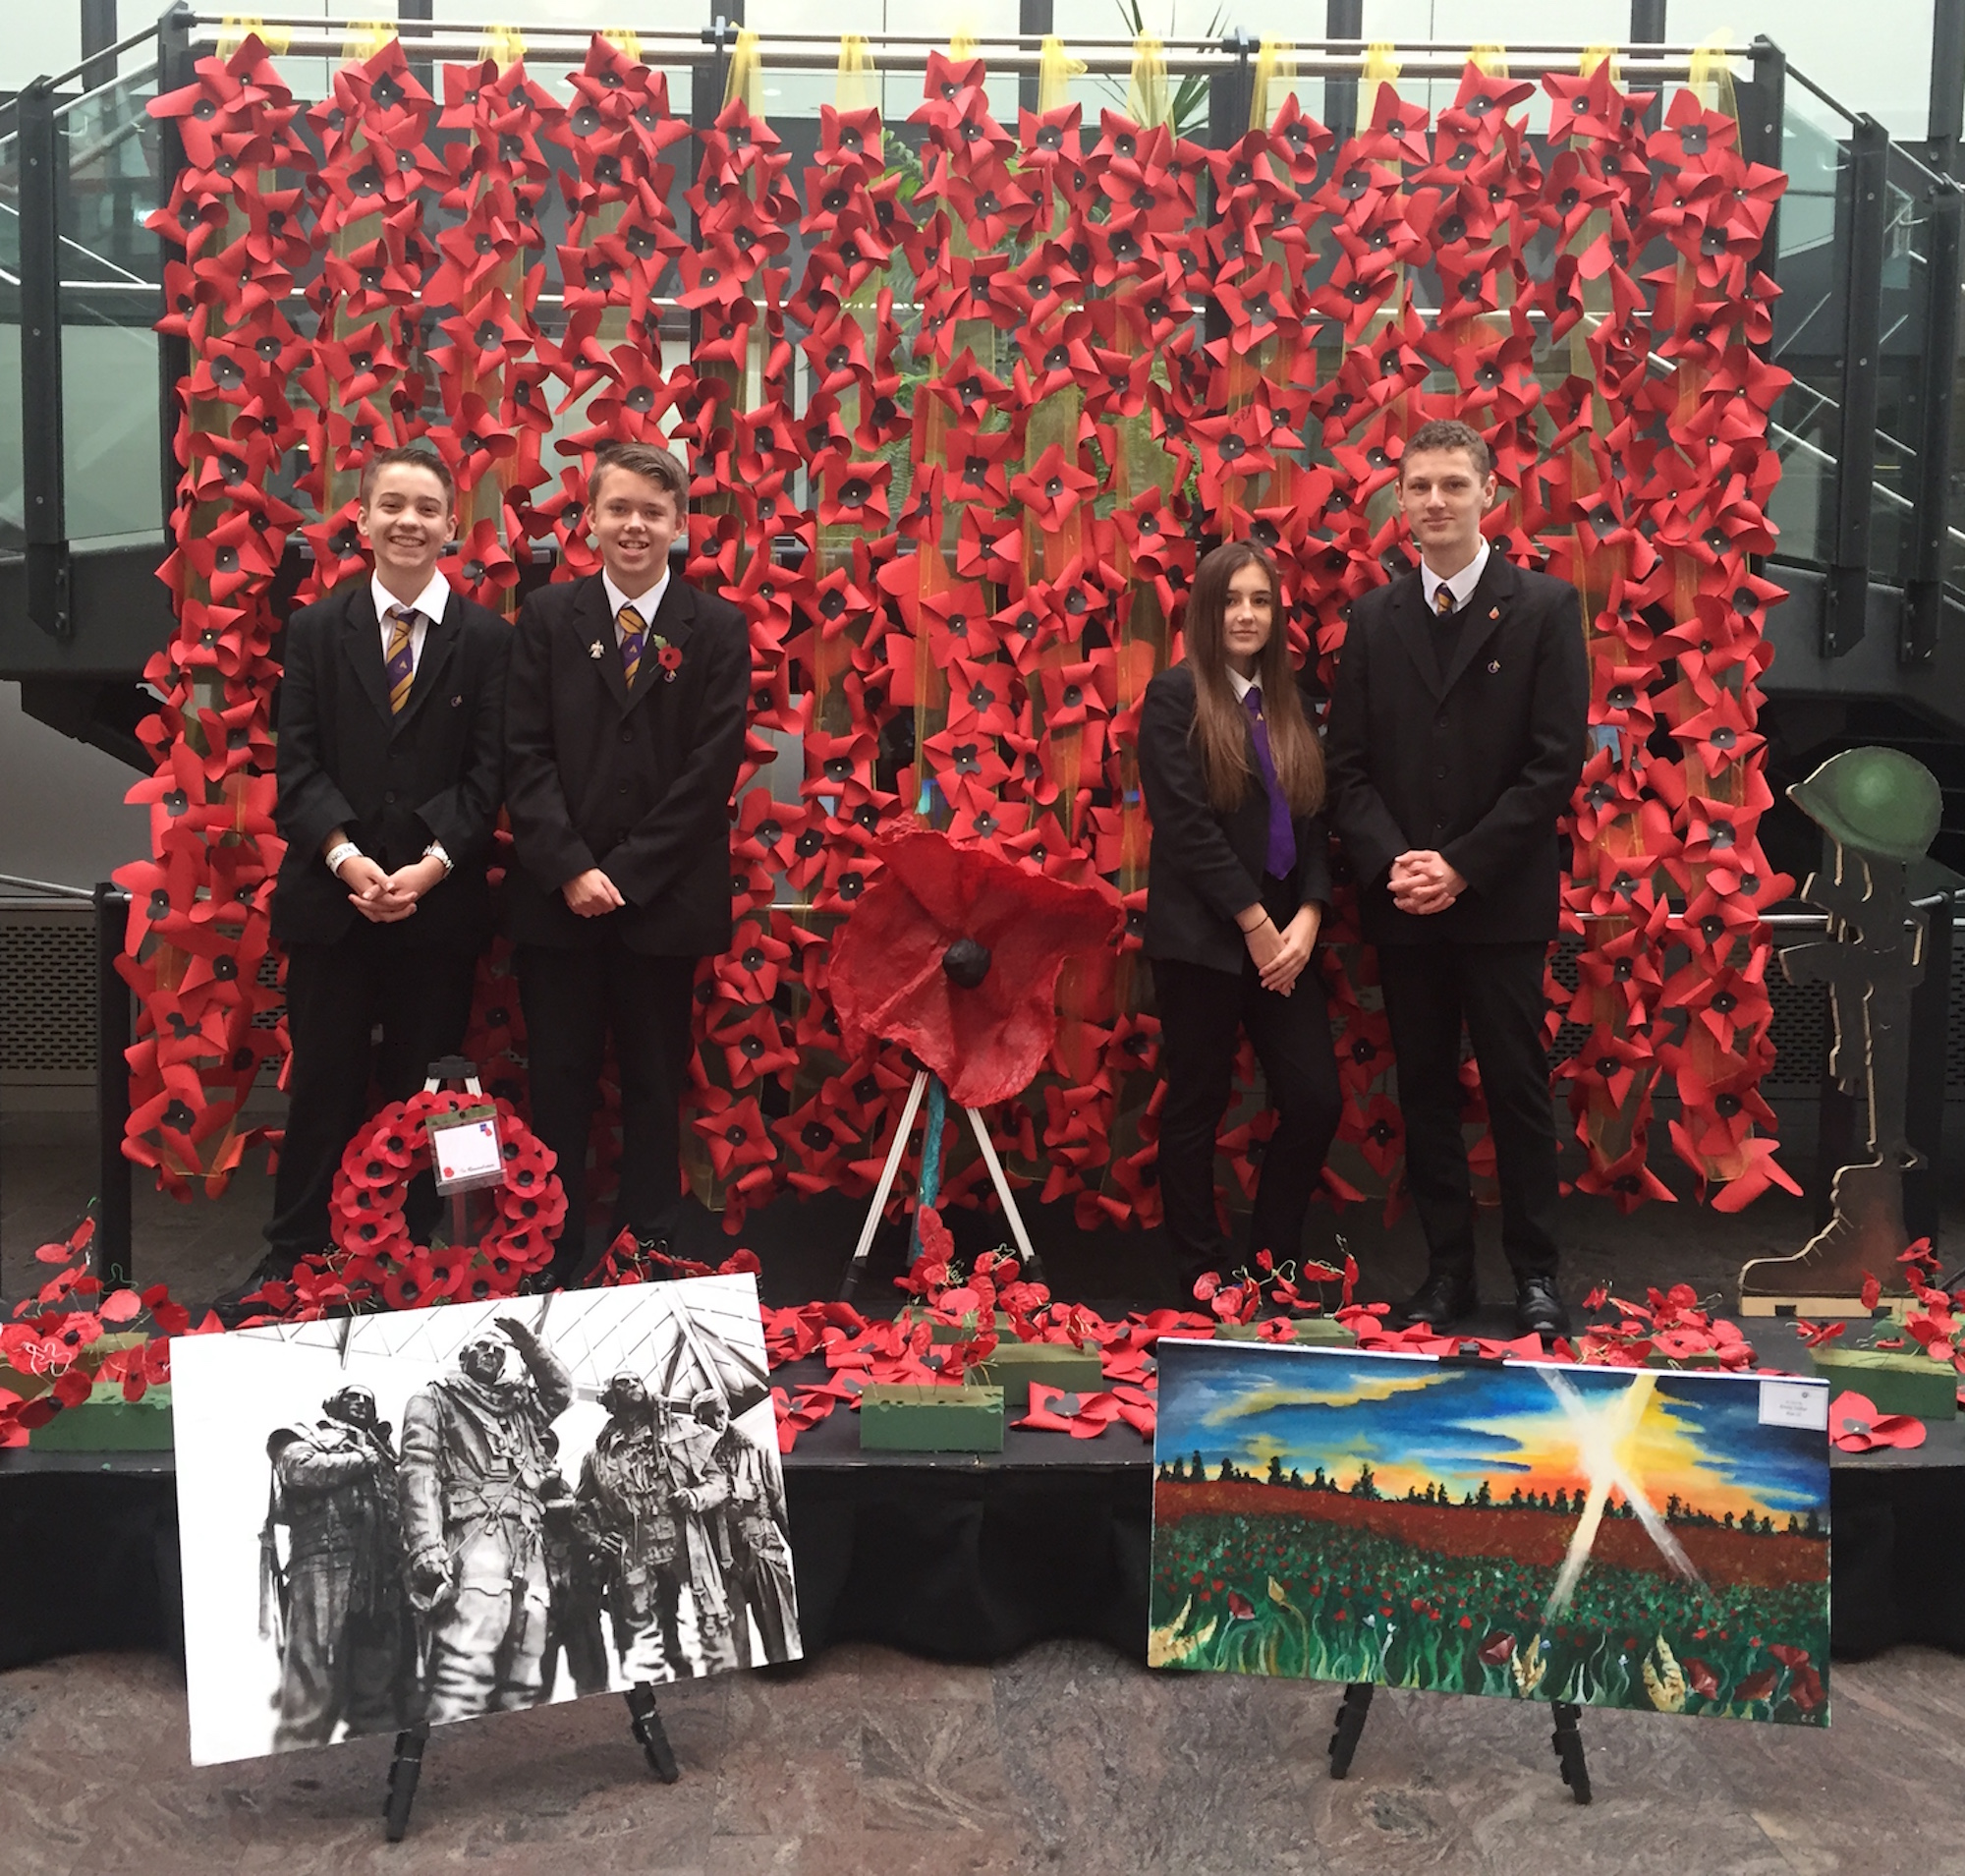 Cascade of poppies for Remembrance